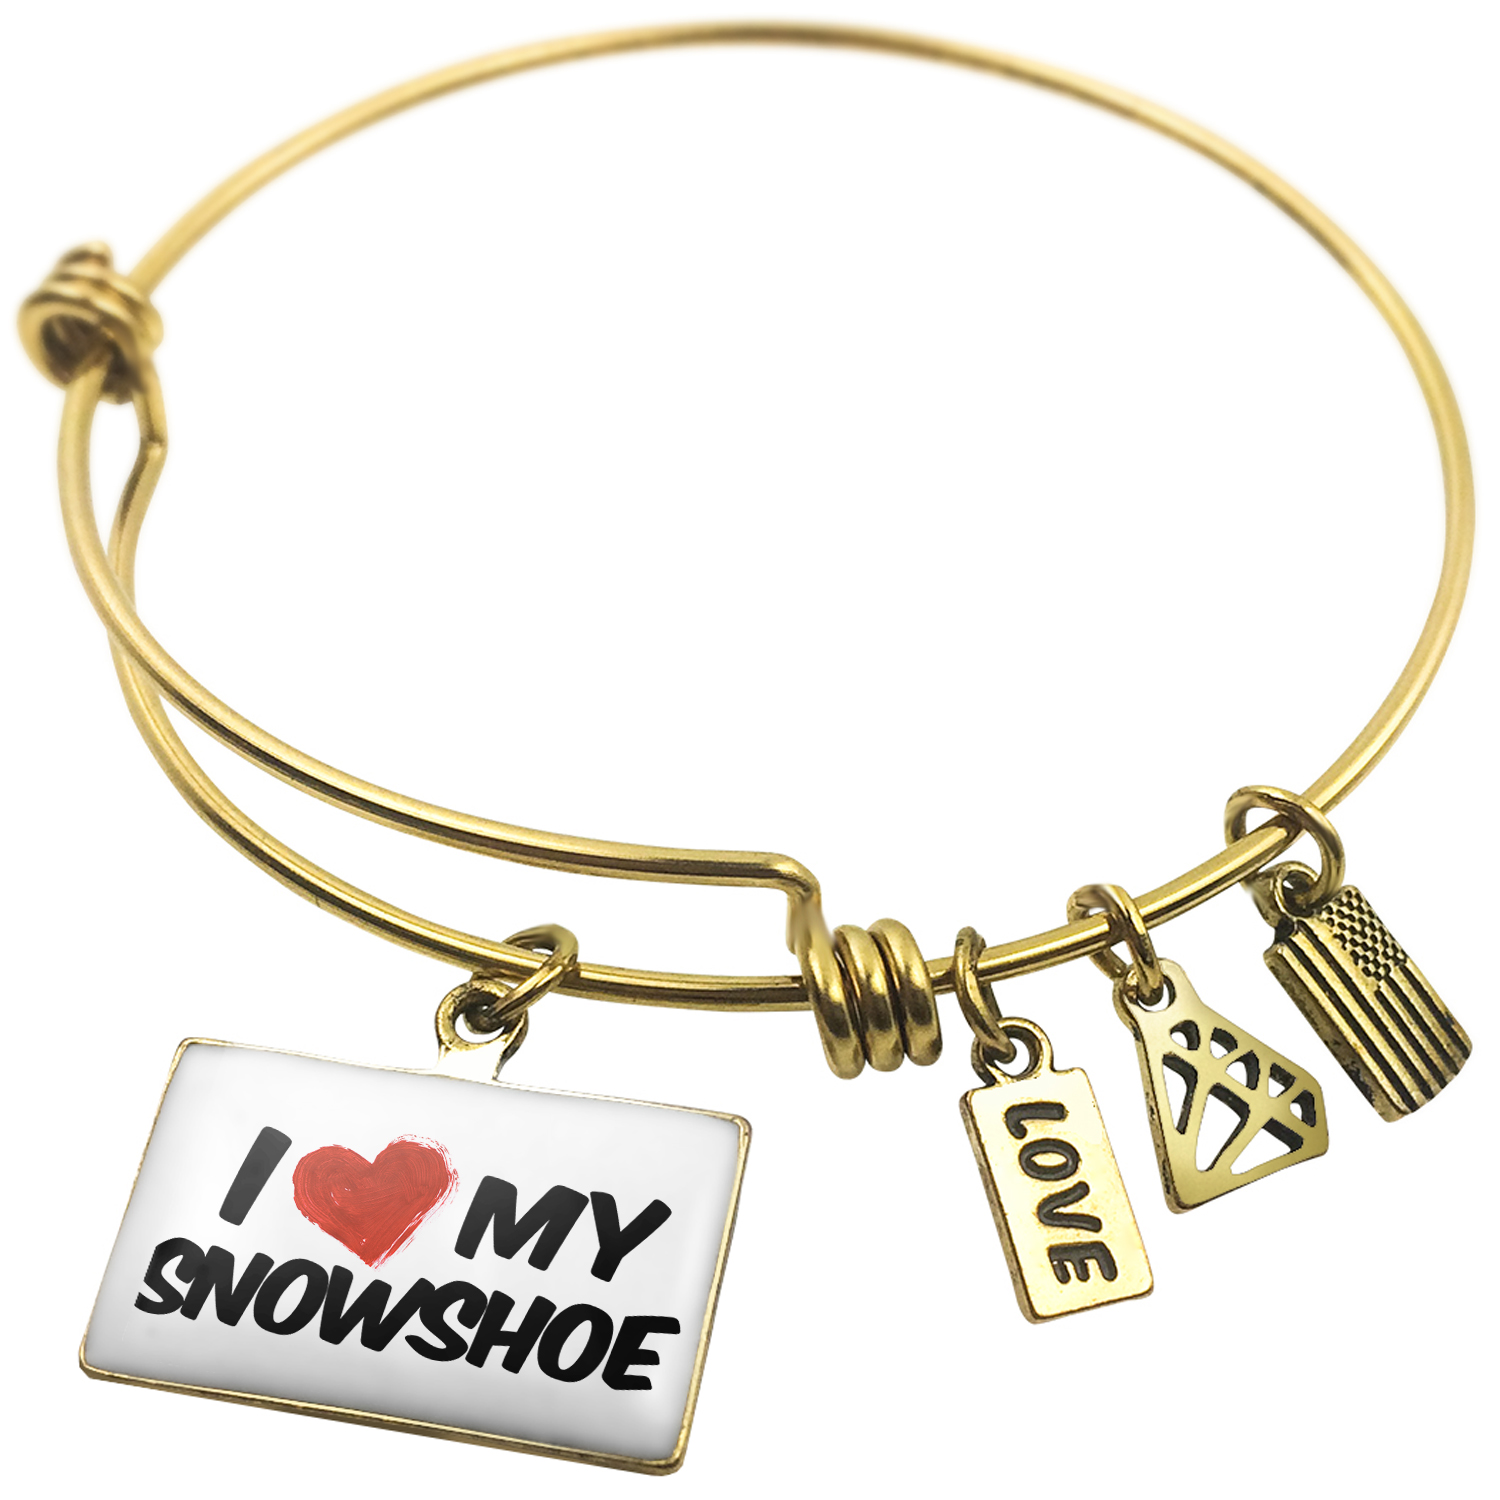 Expandable Wire Bangle Bracelet I Love my Snowshoe Cat from United States NEONBLOND by NEONBLOND